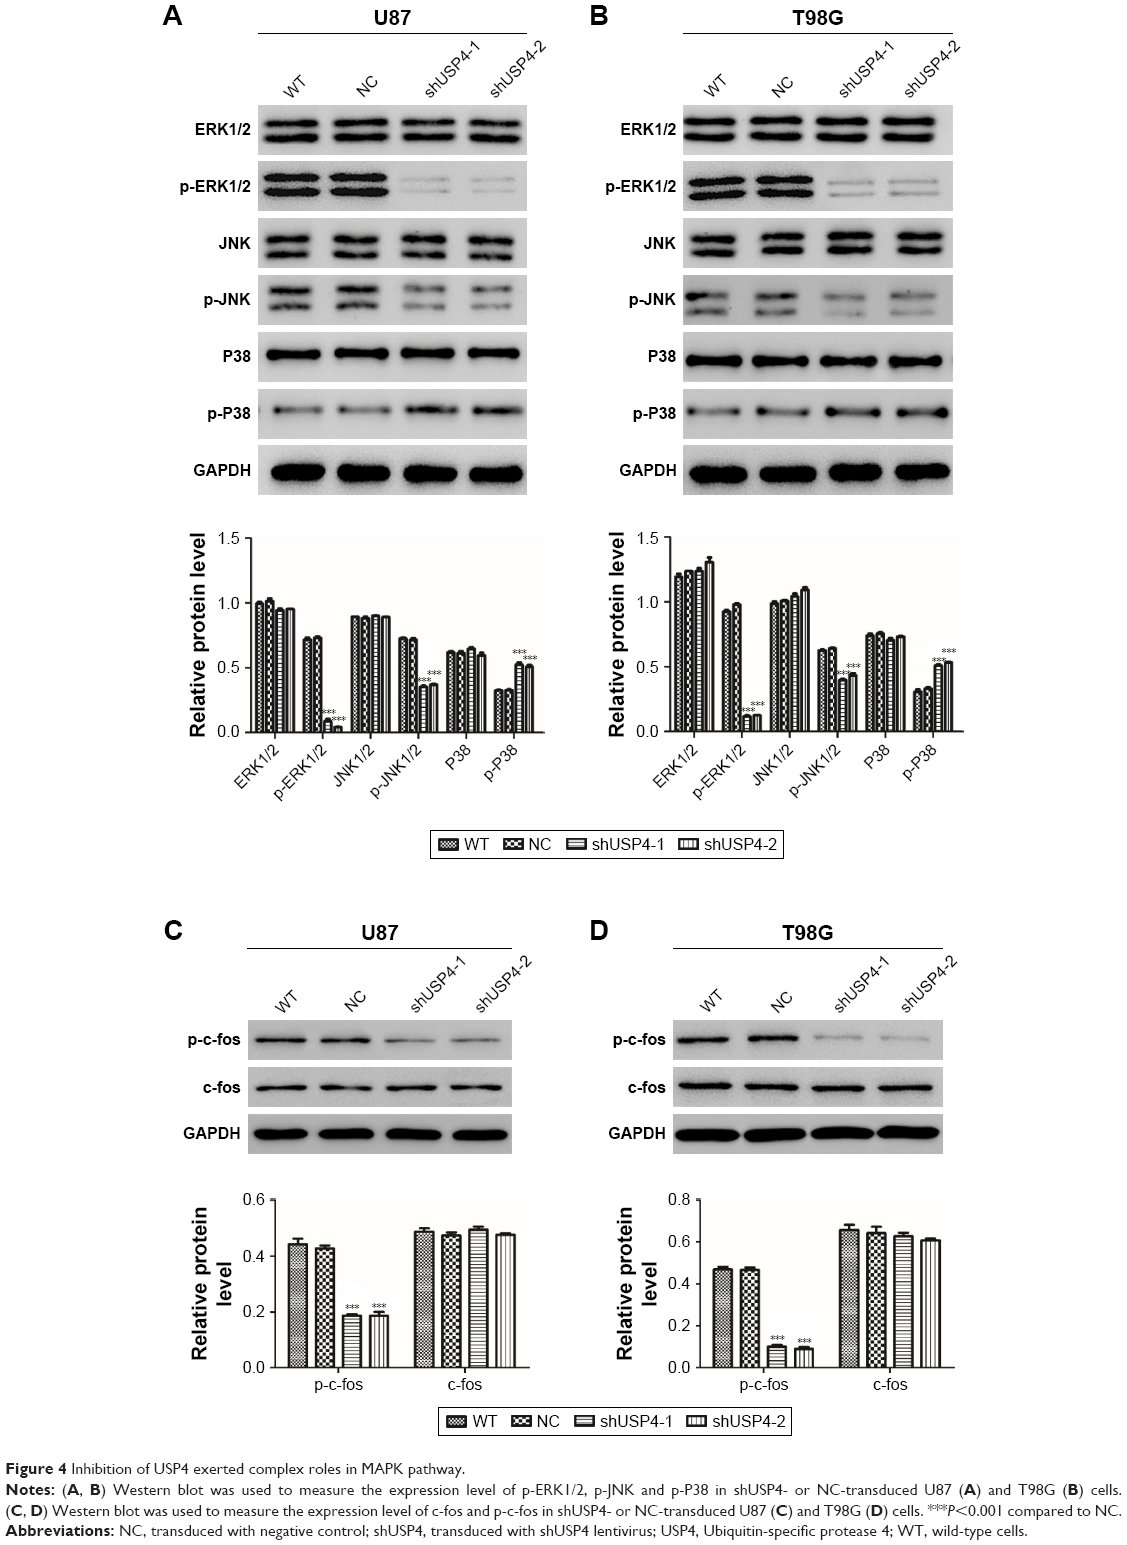 Full text] Ubiquitin-specific protease 4 promotes